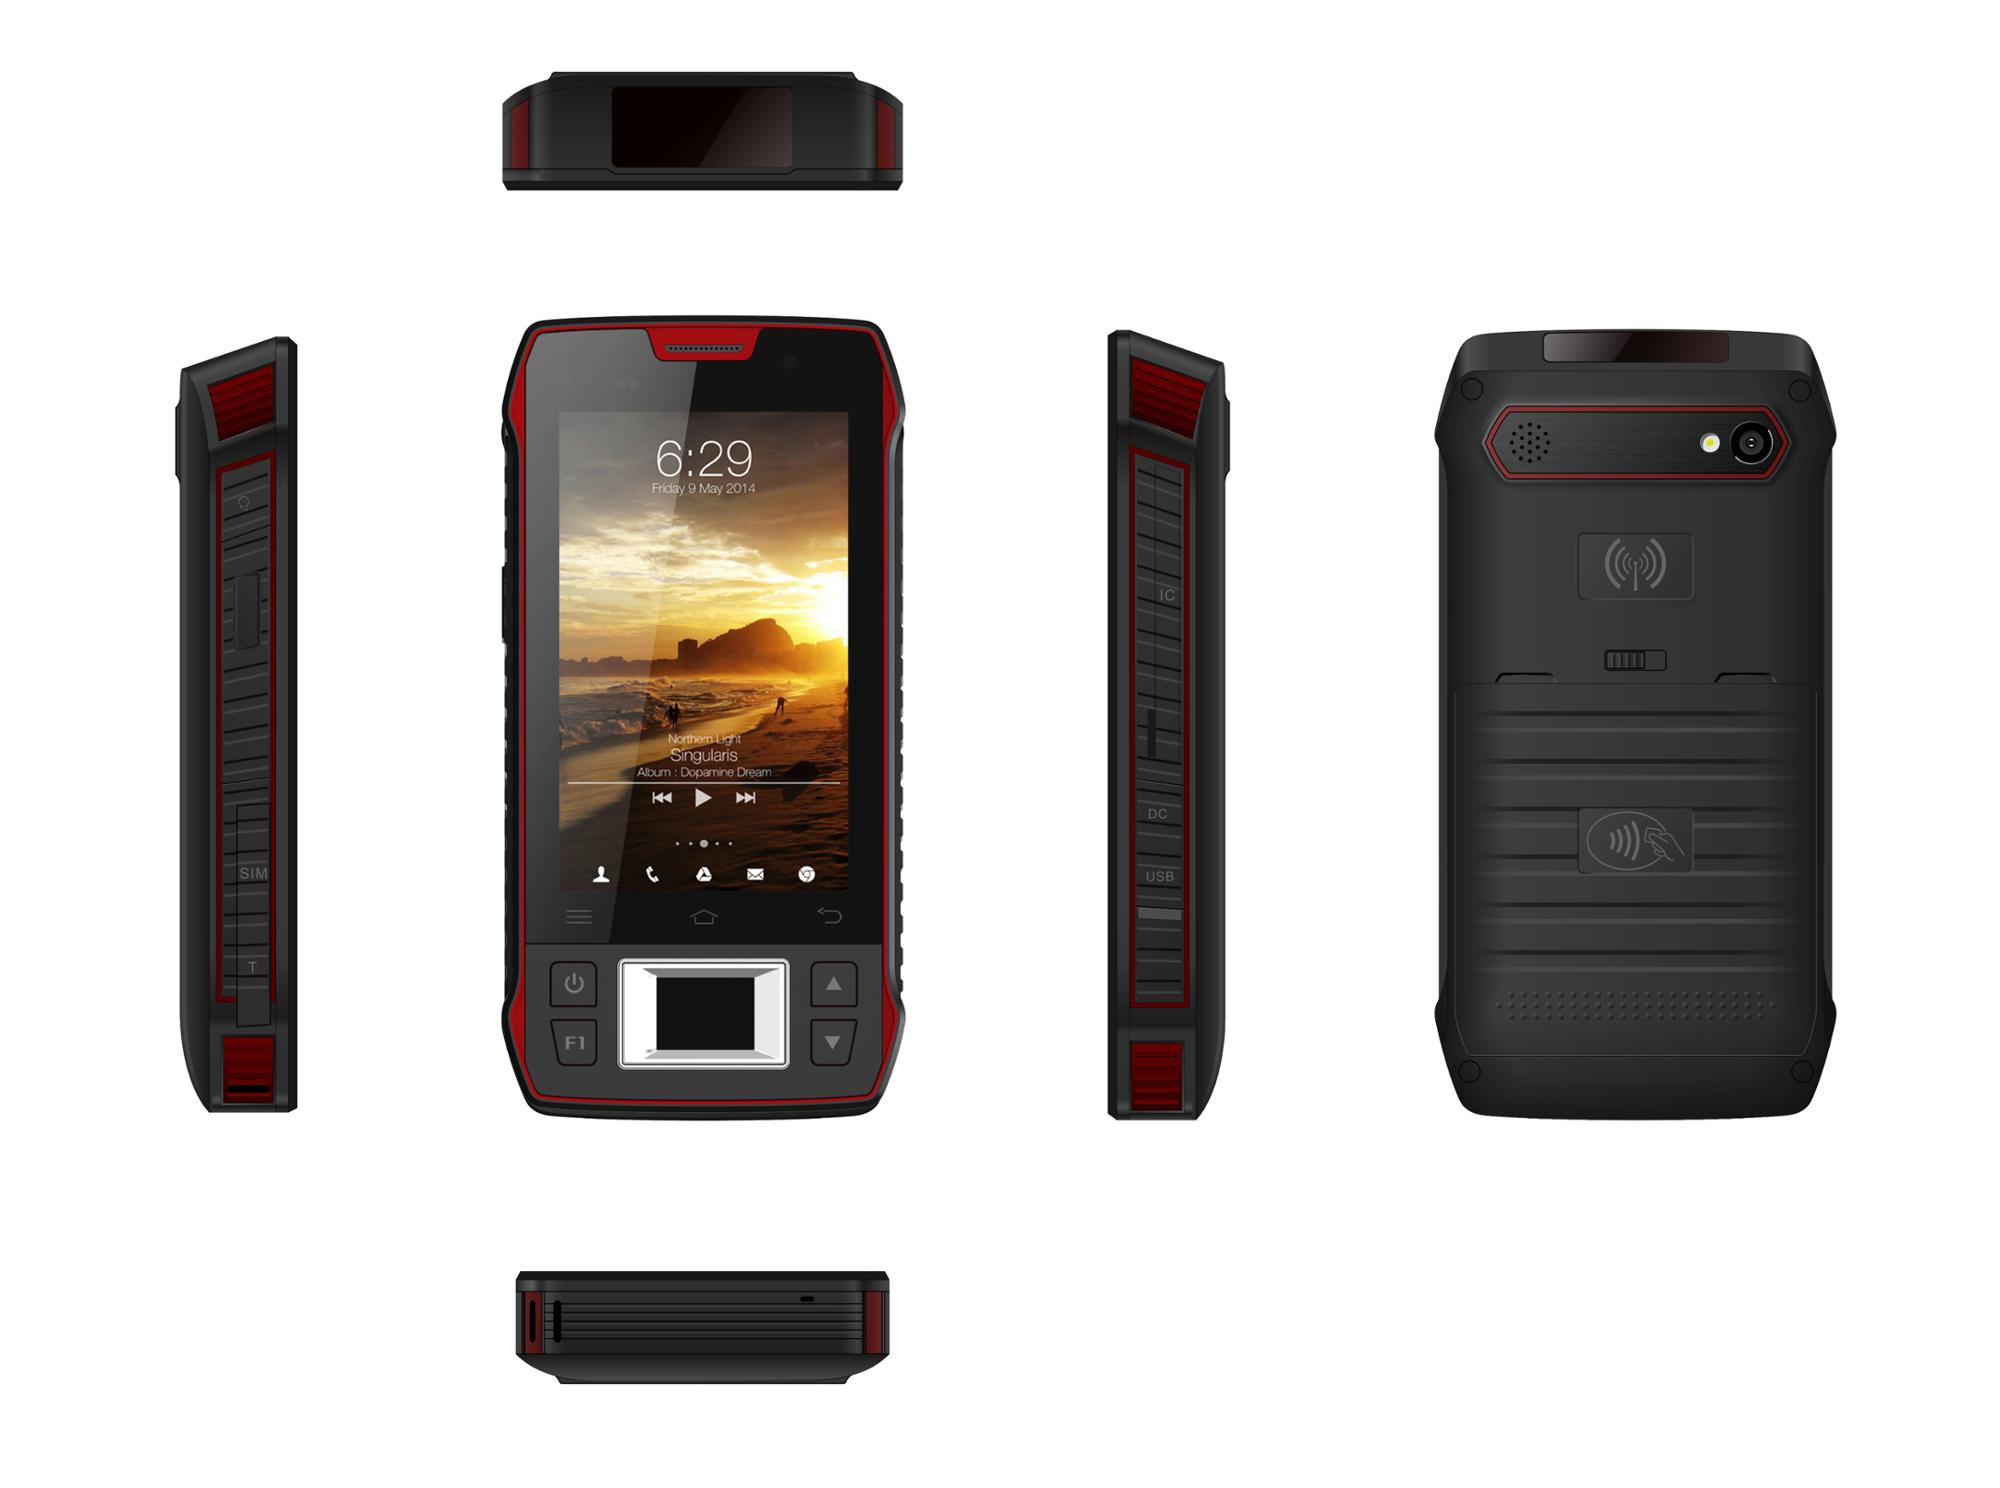 4.3'' android 3g mobile phone with HF RFID/NFC/PSAM